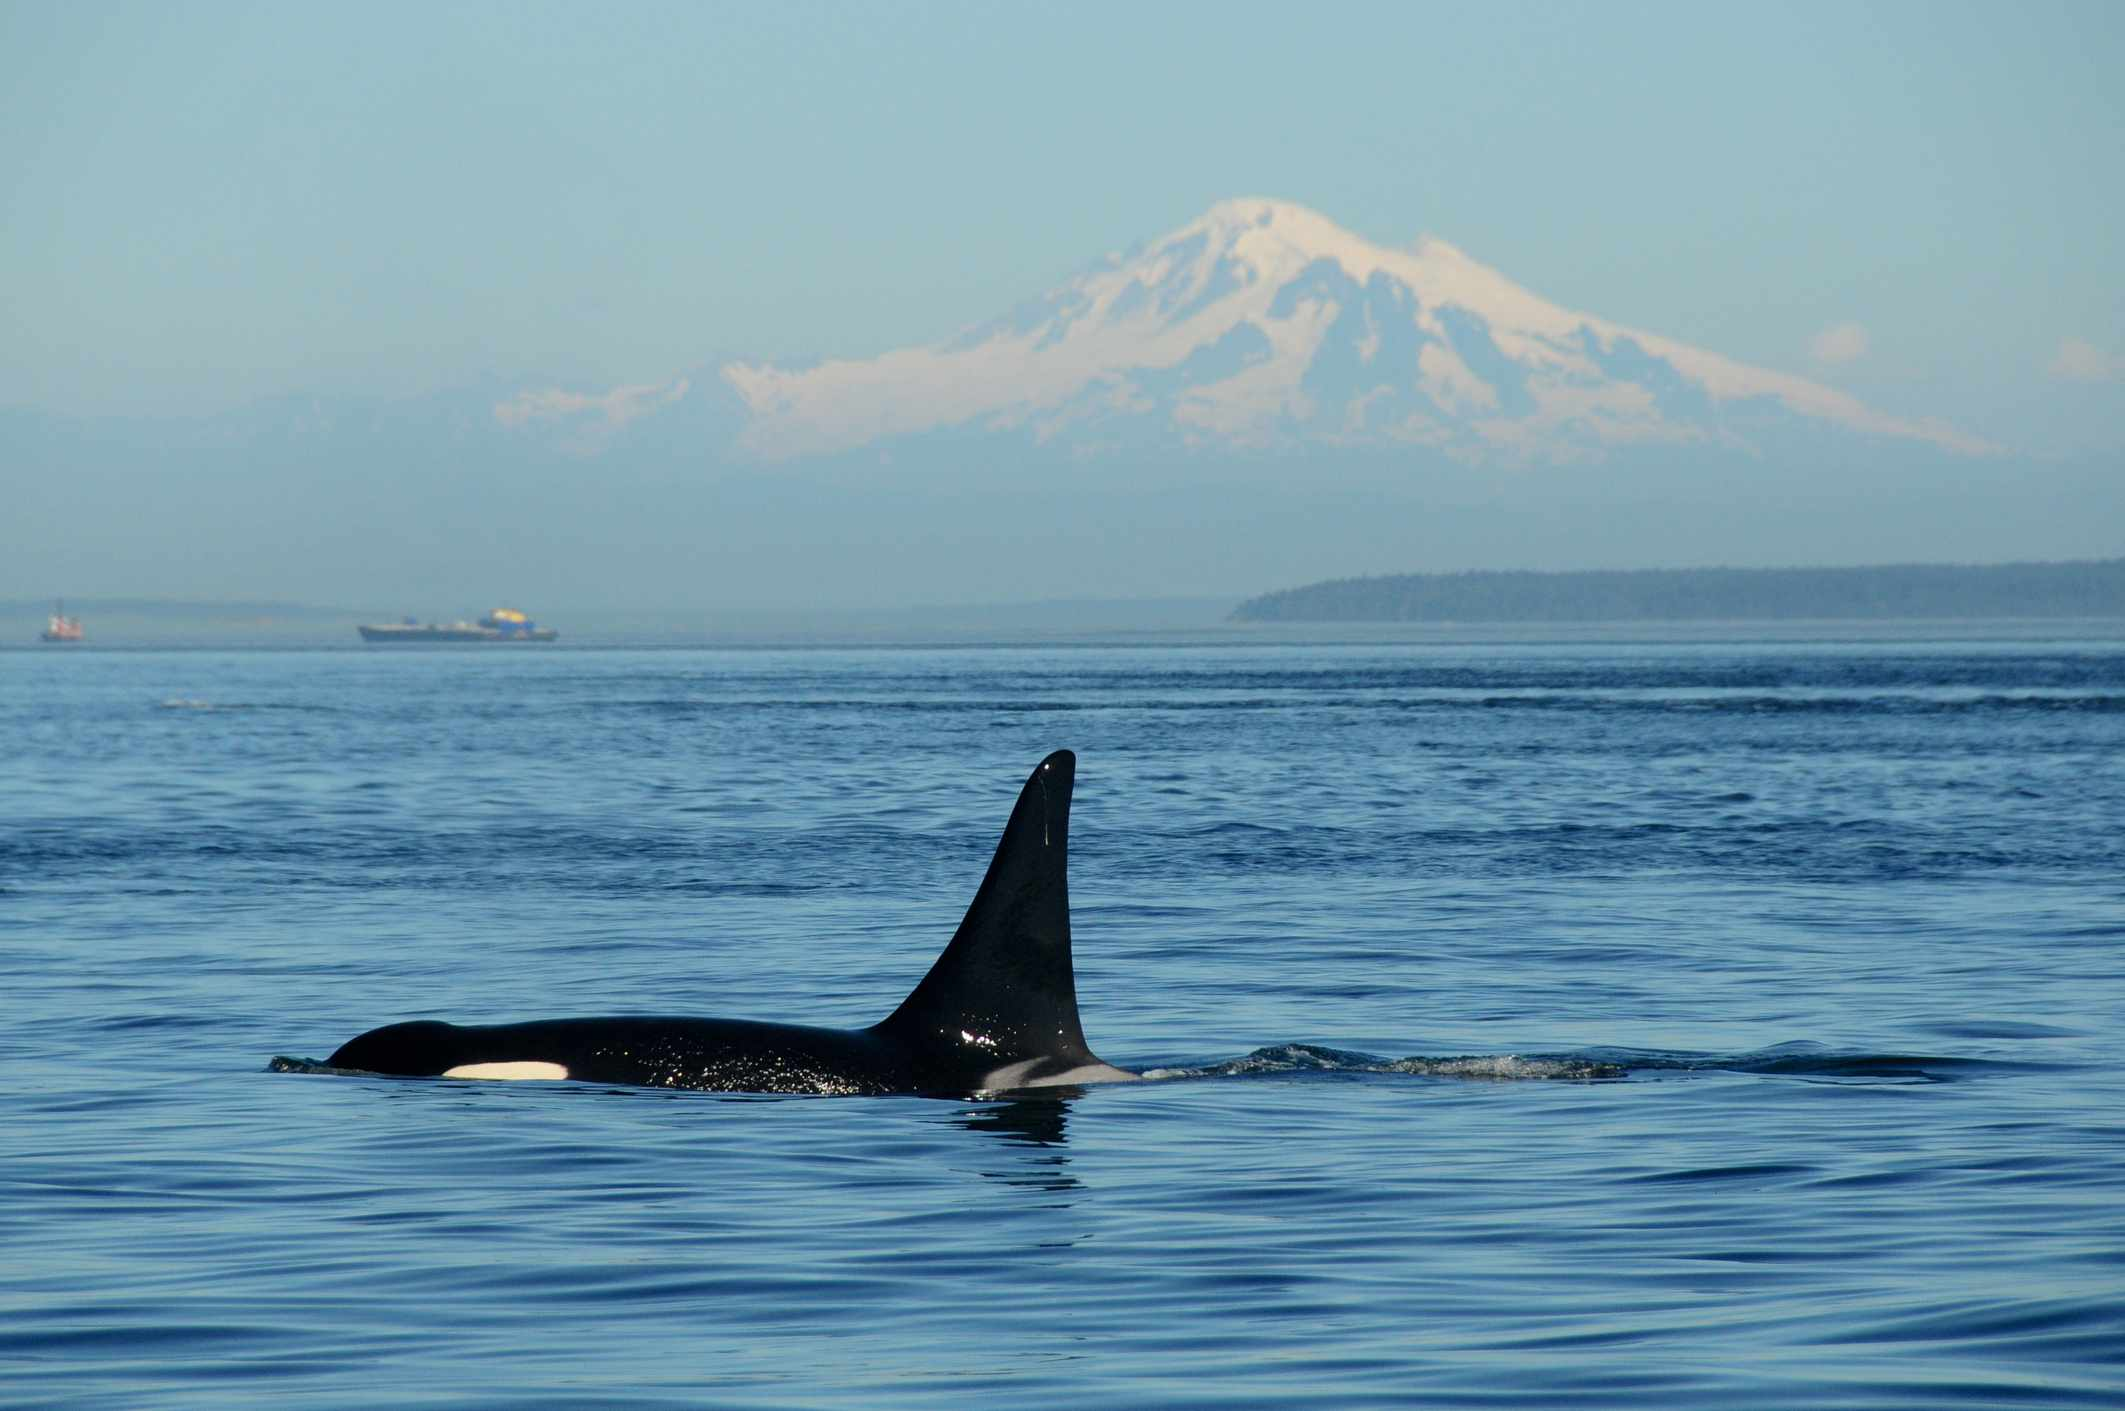 An endangered southern resident orca off the coast of Vancouver, British Columbia.